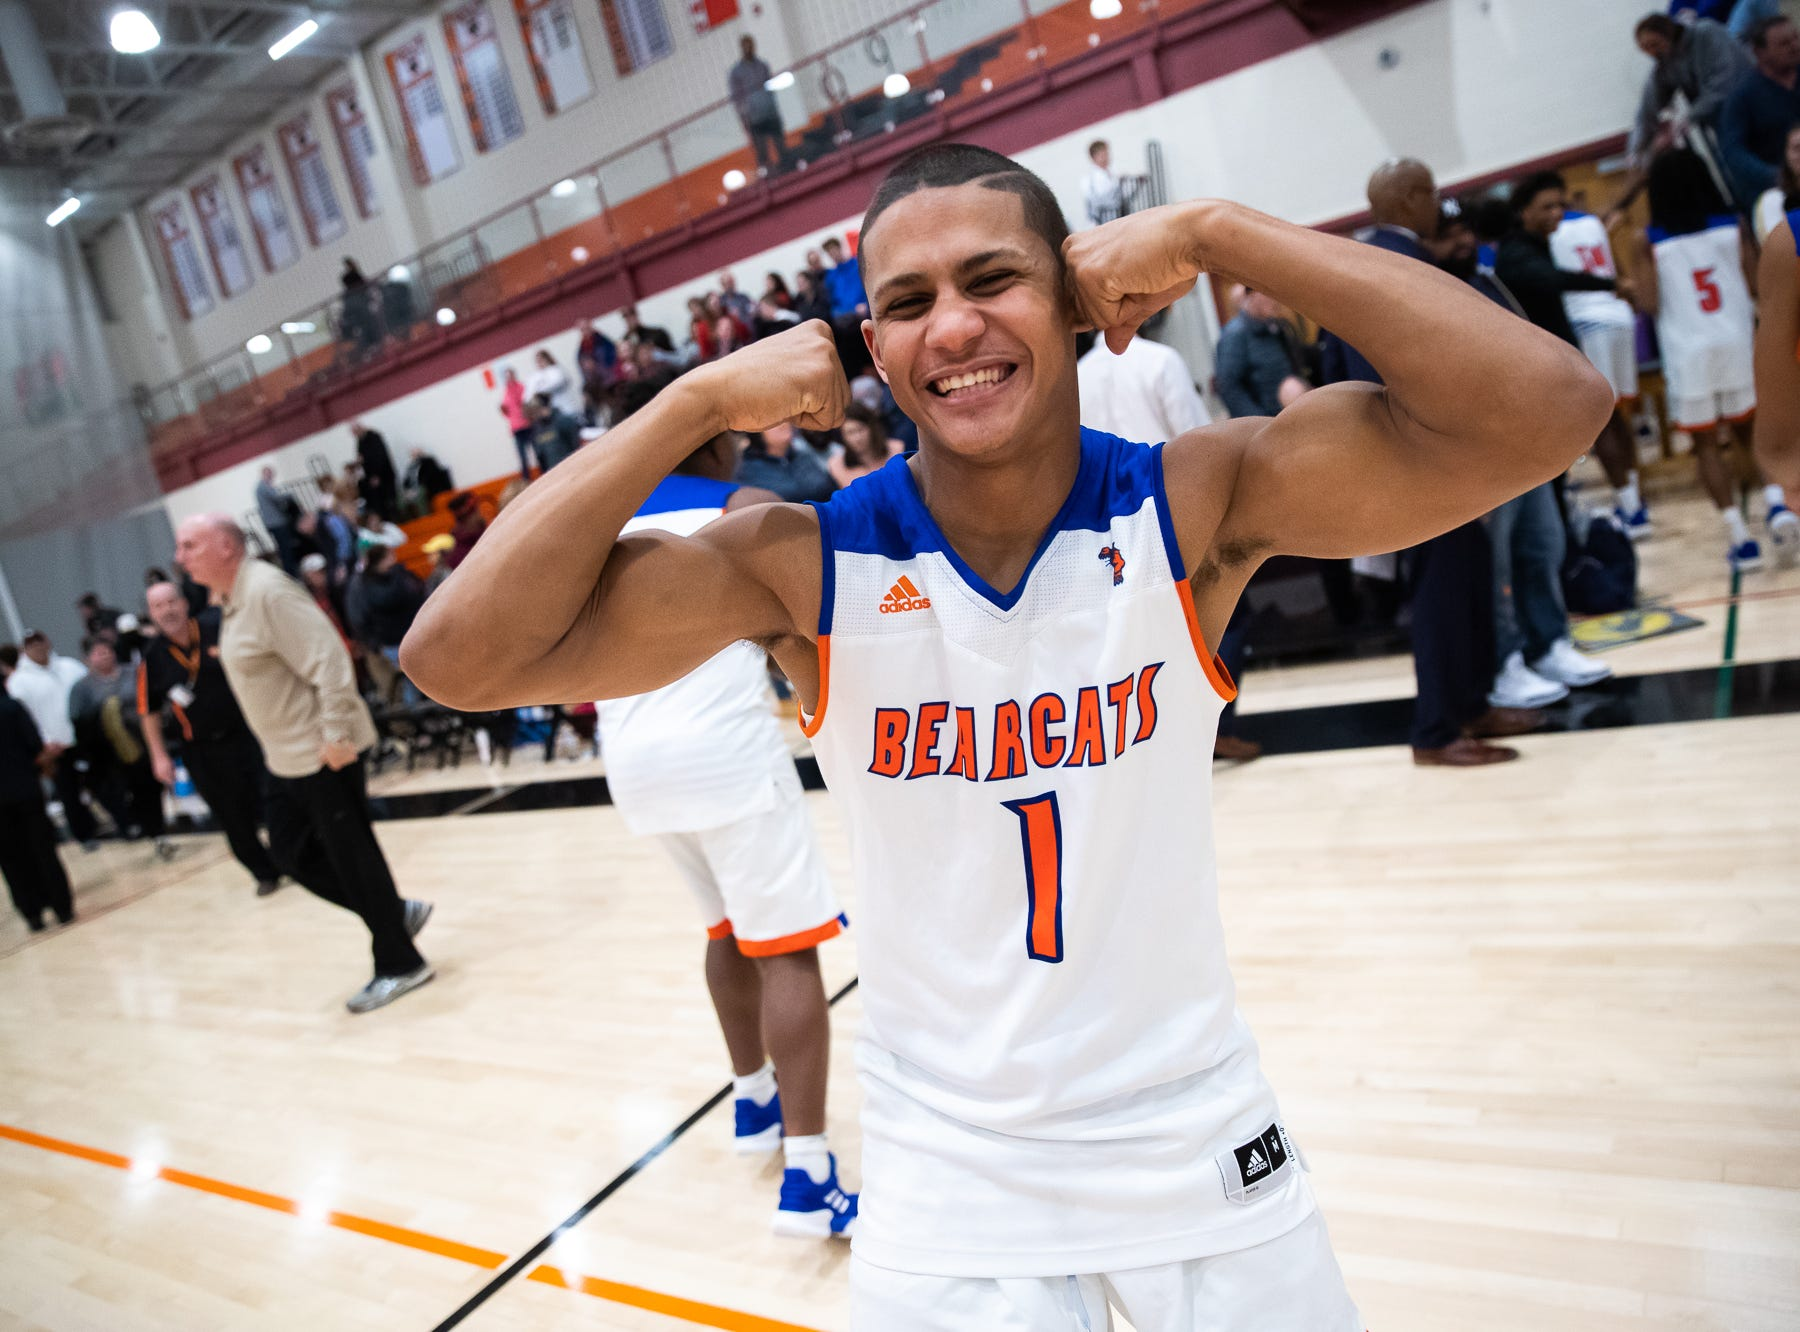 York High's Tobee Stokes (1) celebrates after winning his YAIAA quarterfinal against Dover, Saturday, Feb. 9, 2019, at Central York High School. The York High Bearcats defeated the Dover Eagles 75-53.